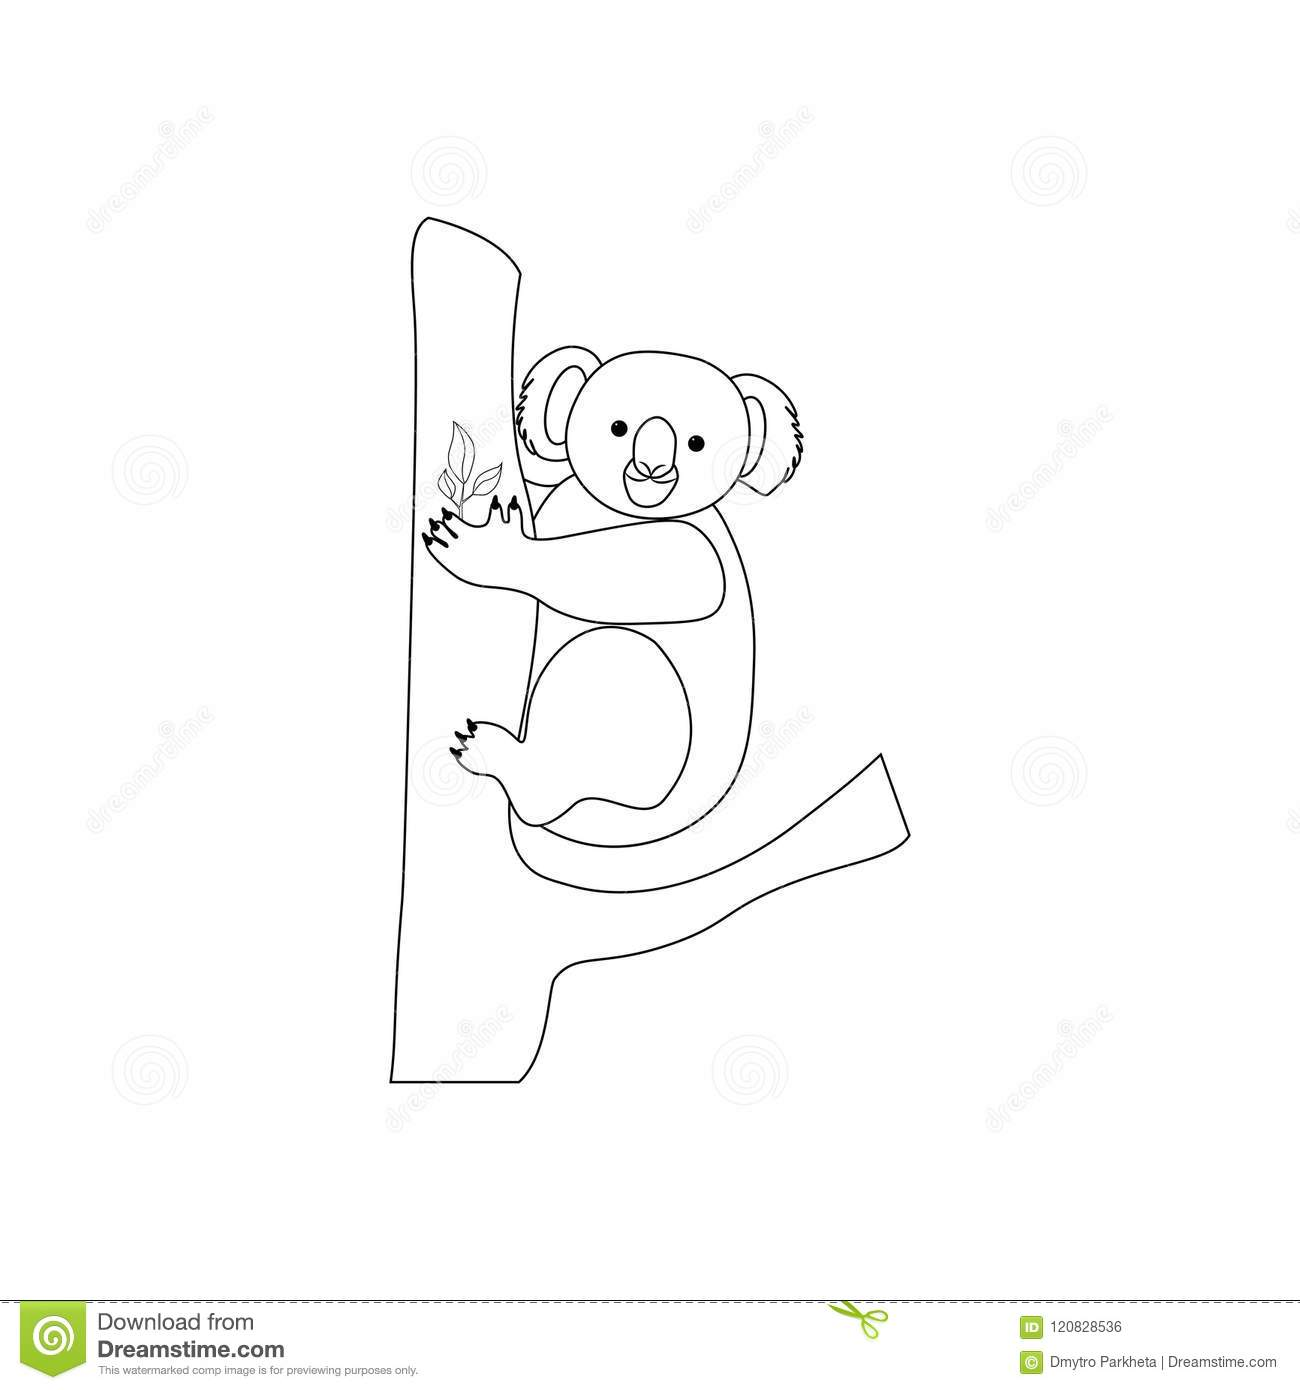 Koala bear coloring pages stock vector. Illustration of cartoon ...